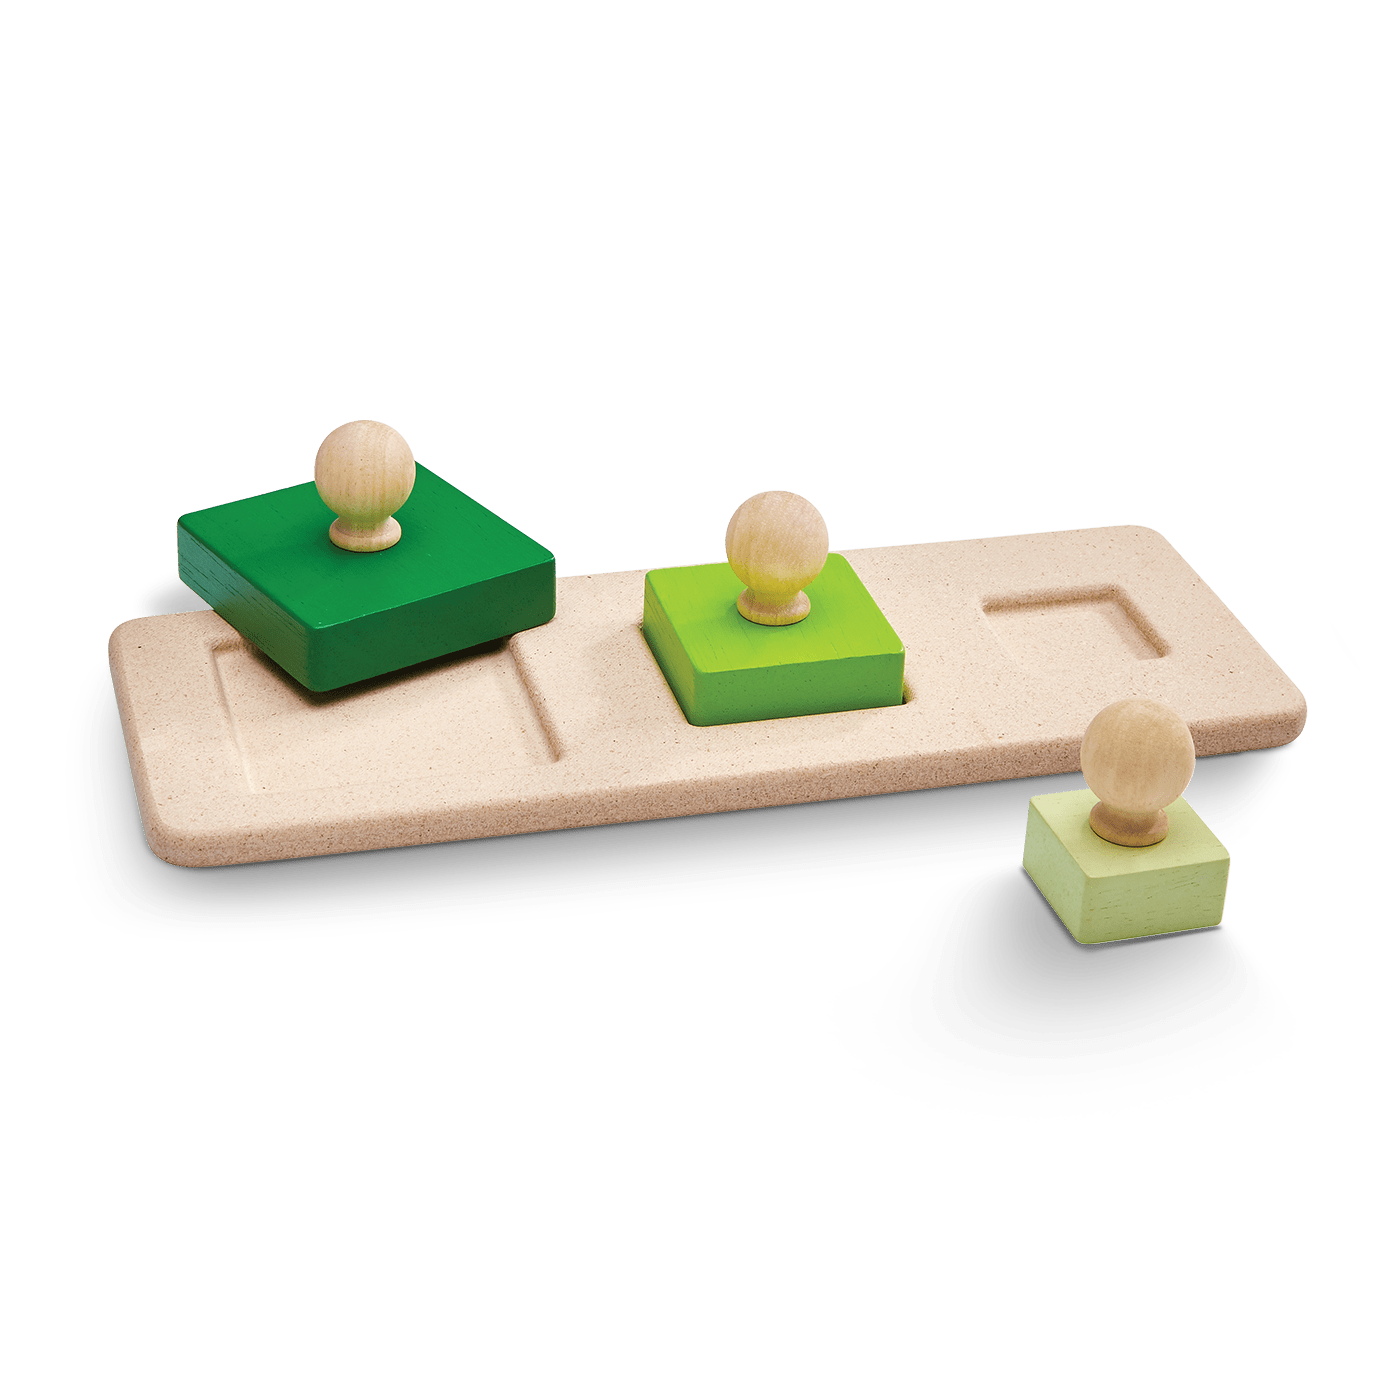 5388_PlanToys_SQUARE_MATCHING_PUZZLE_Learning_and_Education_Concentration_Coordination_Mathematical_Problem_Solving_Social_12m_Wooden_toys_Education_toys_Safety_Toys_Non-toxic_0.png